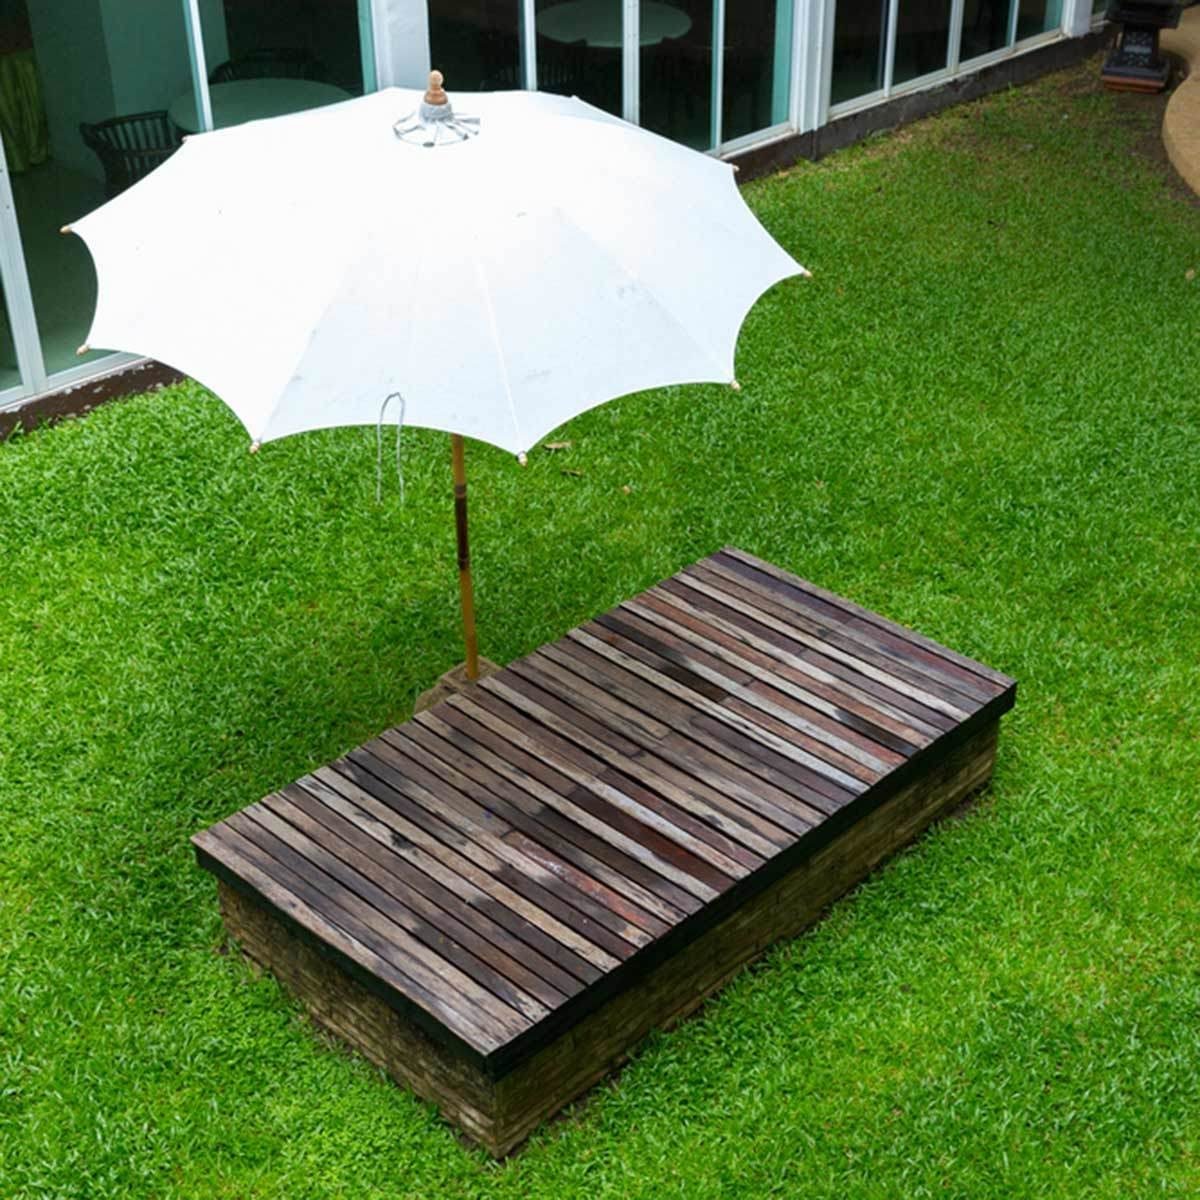 Use Freestanding Umbrellas for Mobile Shade